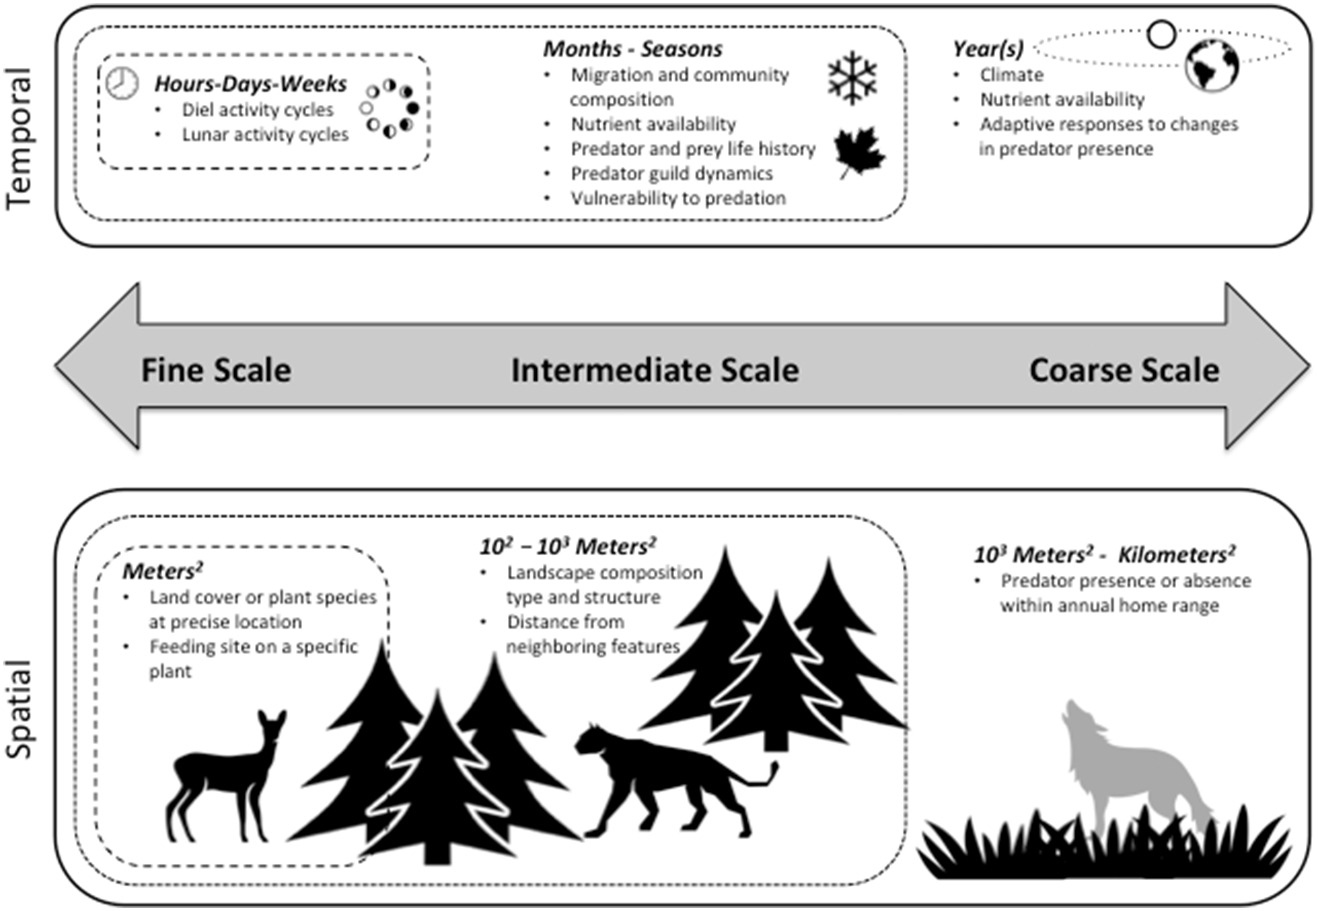 Fig. 2.Both temporal (top) and spatial (bottom) scales of risk effects may be considered along a continuum ranging from fine scale to coarse scale, the extent and resolution of which will vary depending on the study system and species. The spatial scales presented in this framework are roughly analogous to 4th-order selection (fine scale), 3rd-order selection (intermediate scale), and 2nd-order selection (coarse scale) proposed by Johnson (1980) . The appropriate scale(s) of analysis will depend on the goals of the study, resolution of the data, and practical limitations.